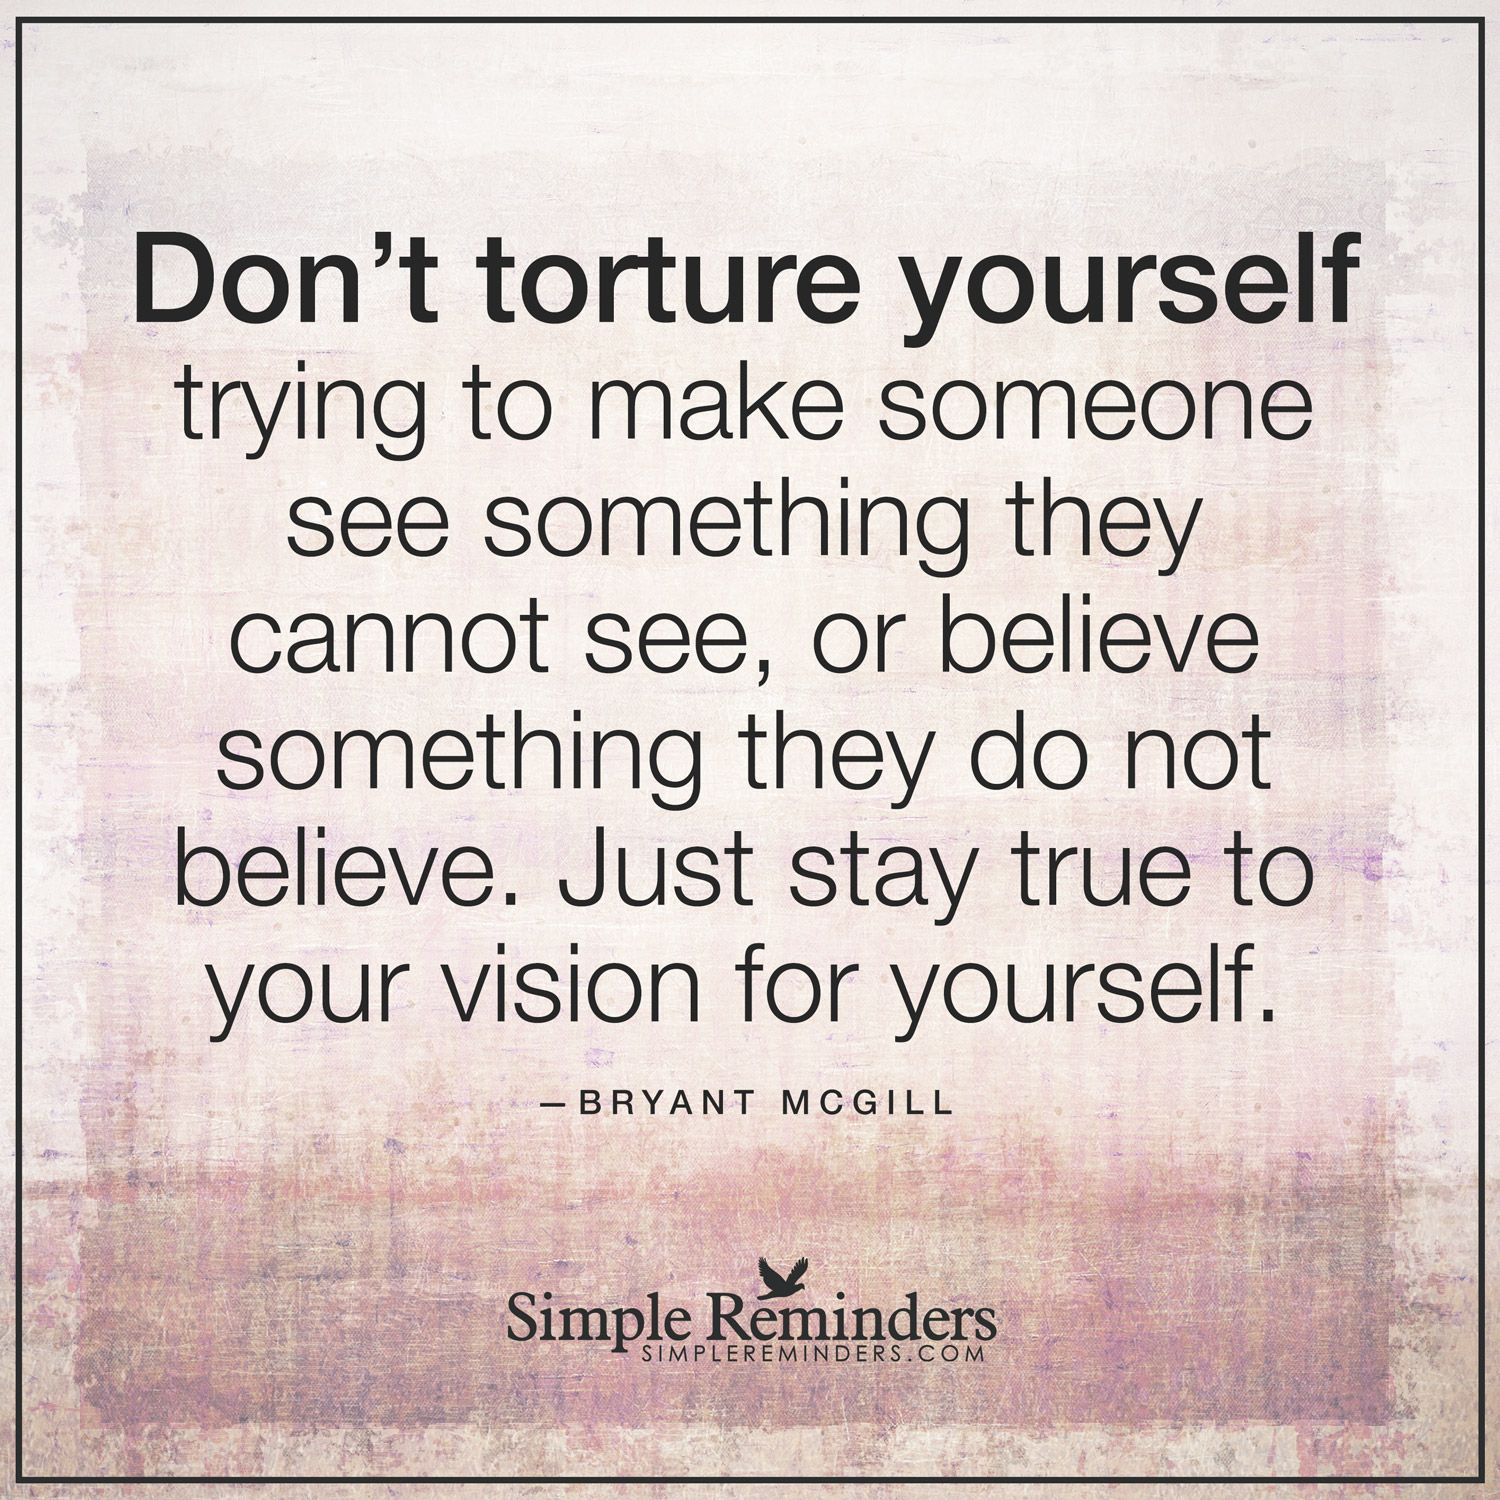 Do not torture yourself Don't torture yourself trying to make someone see  something they cannot see, or believe something they do not believe.